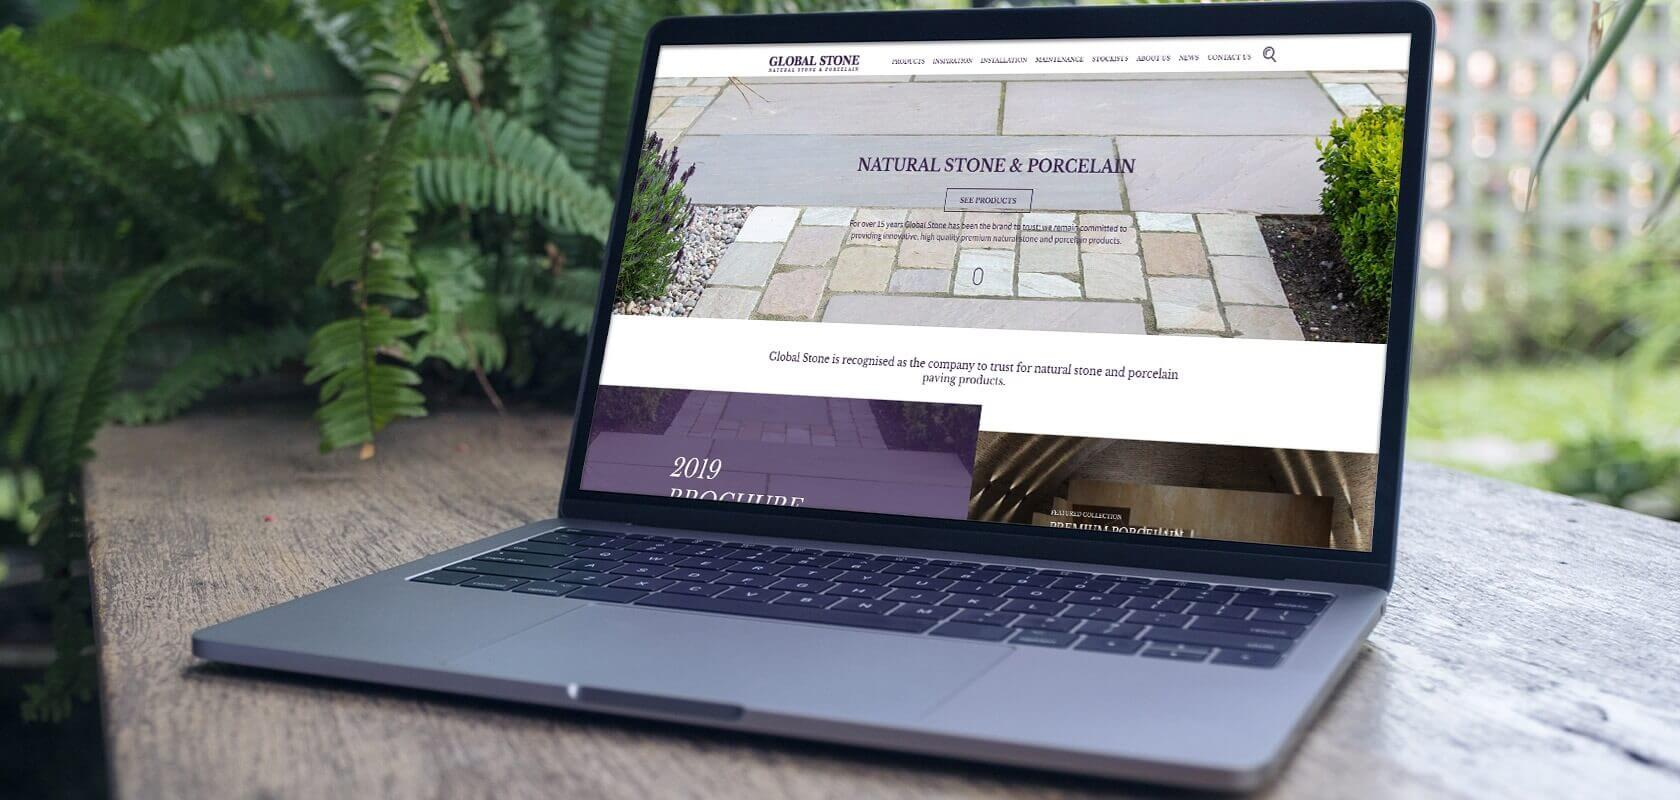 Global stone website on laptop